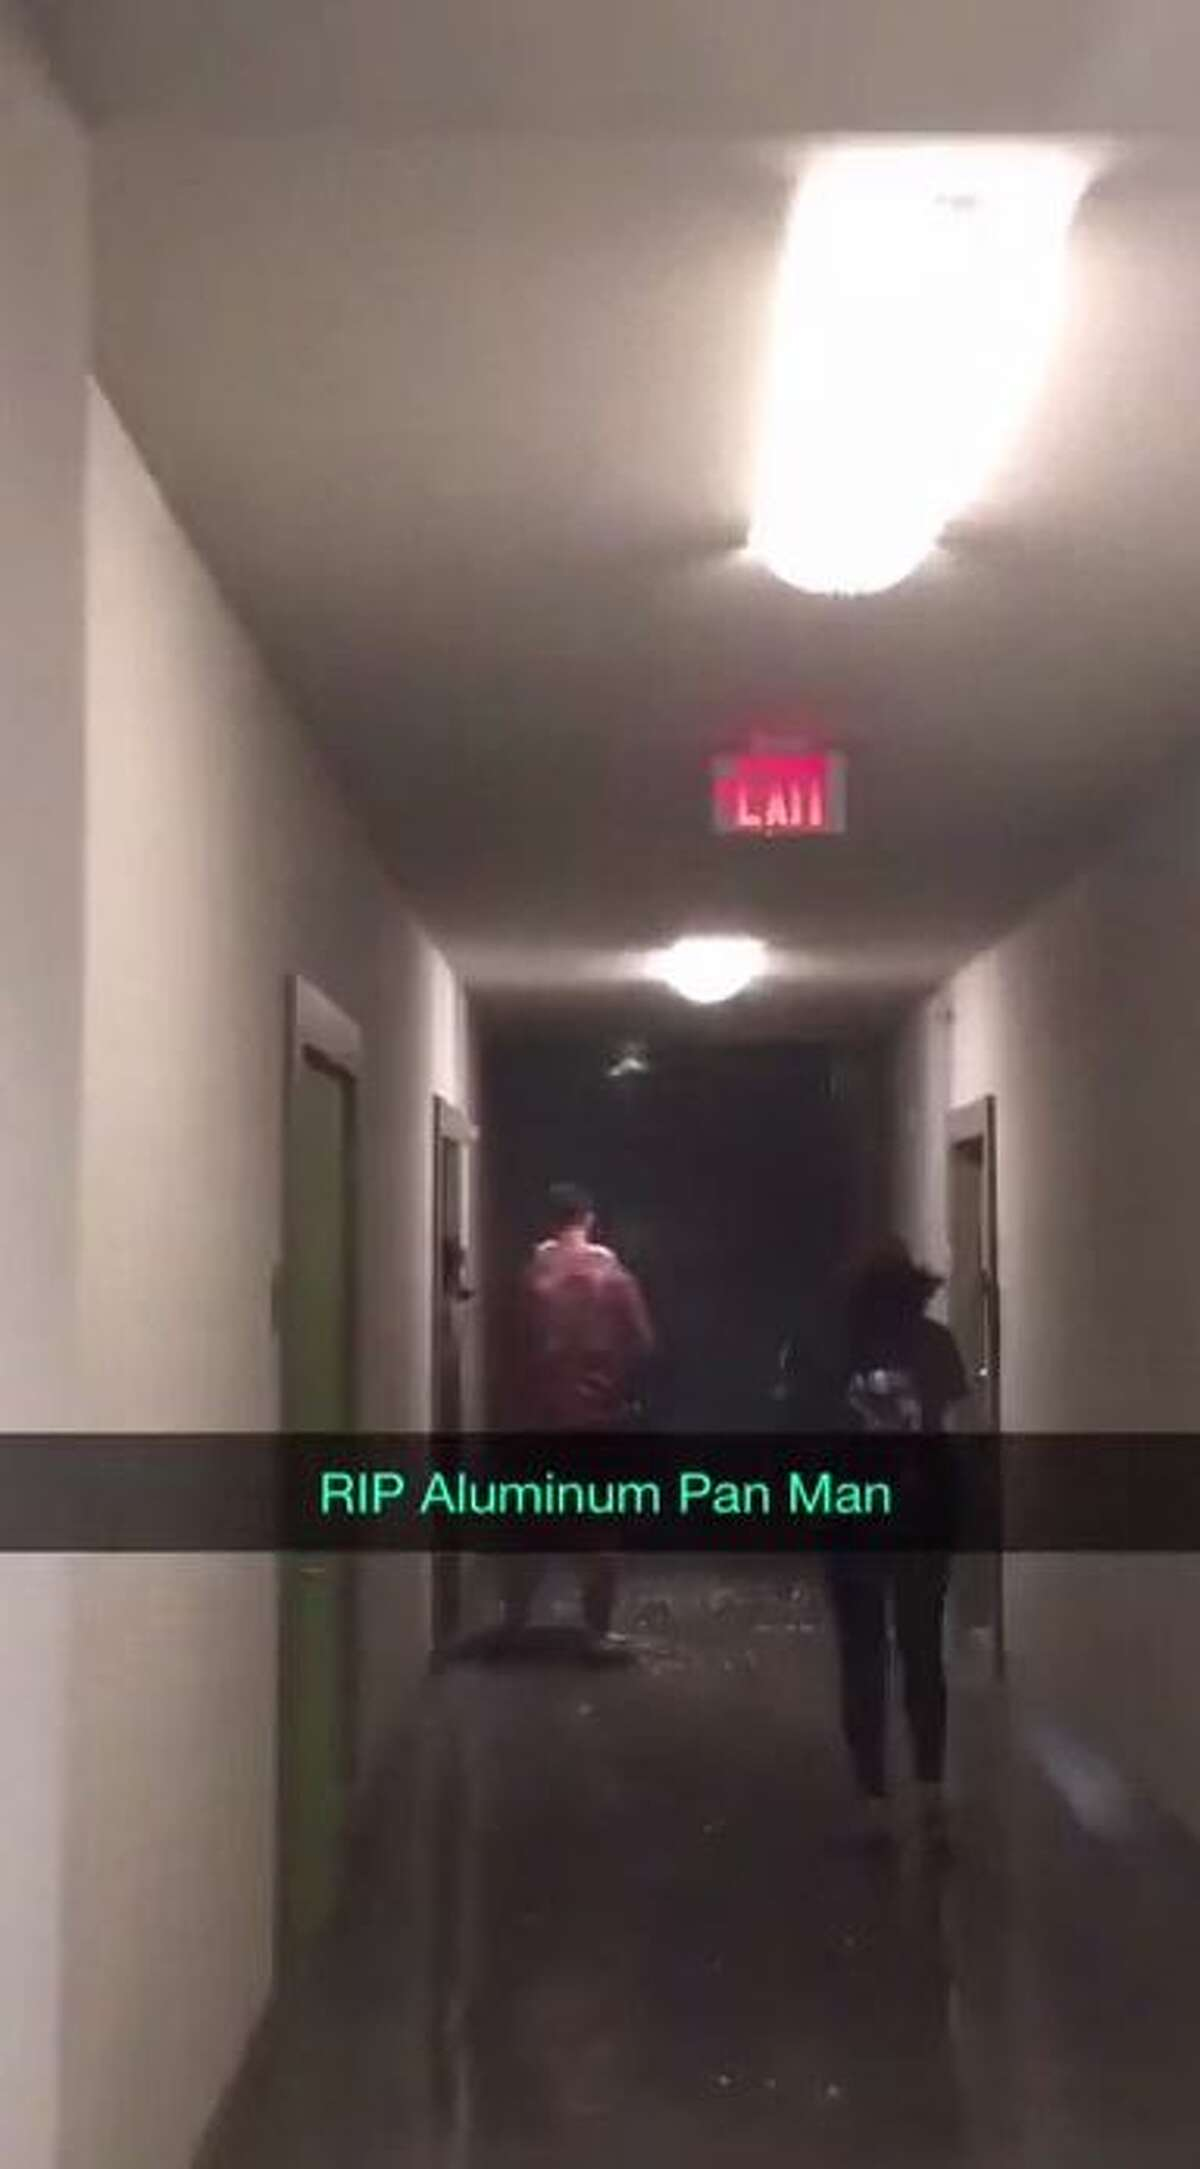 The then-UTSA college student is going viral again thanks to his 2016 video of him heading out into a massive hail storm with an aluminum pan over his head. As he disappeared in the rain, a lightning strike followed, along with screams and car horns.